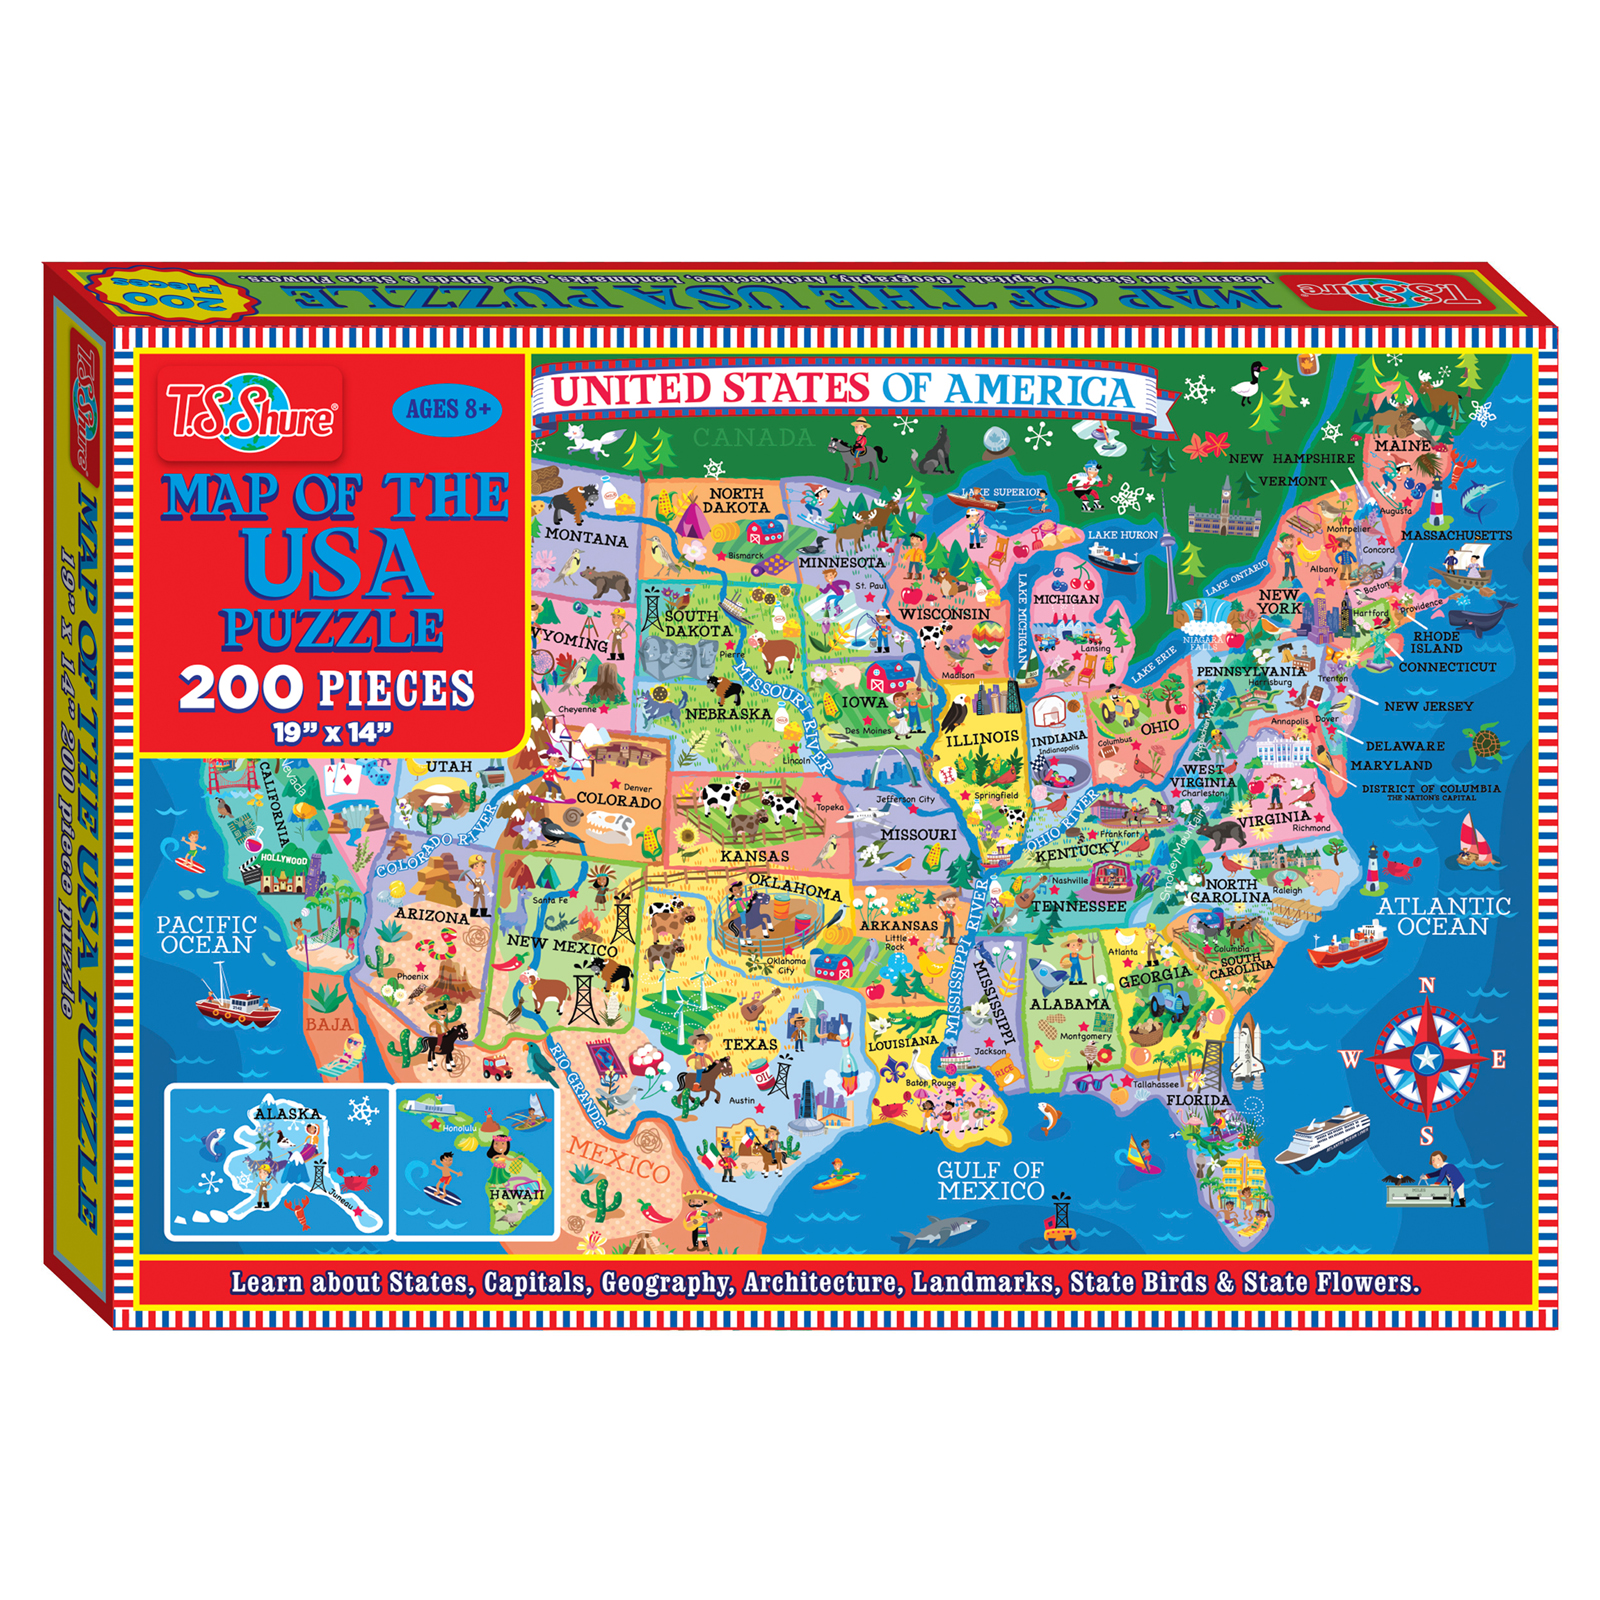 TS Shure Map of the USA 200 Piece Jigsaw Puzzle Jigsaw